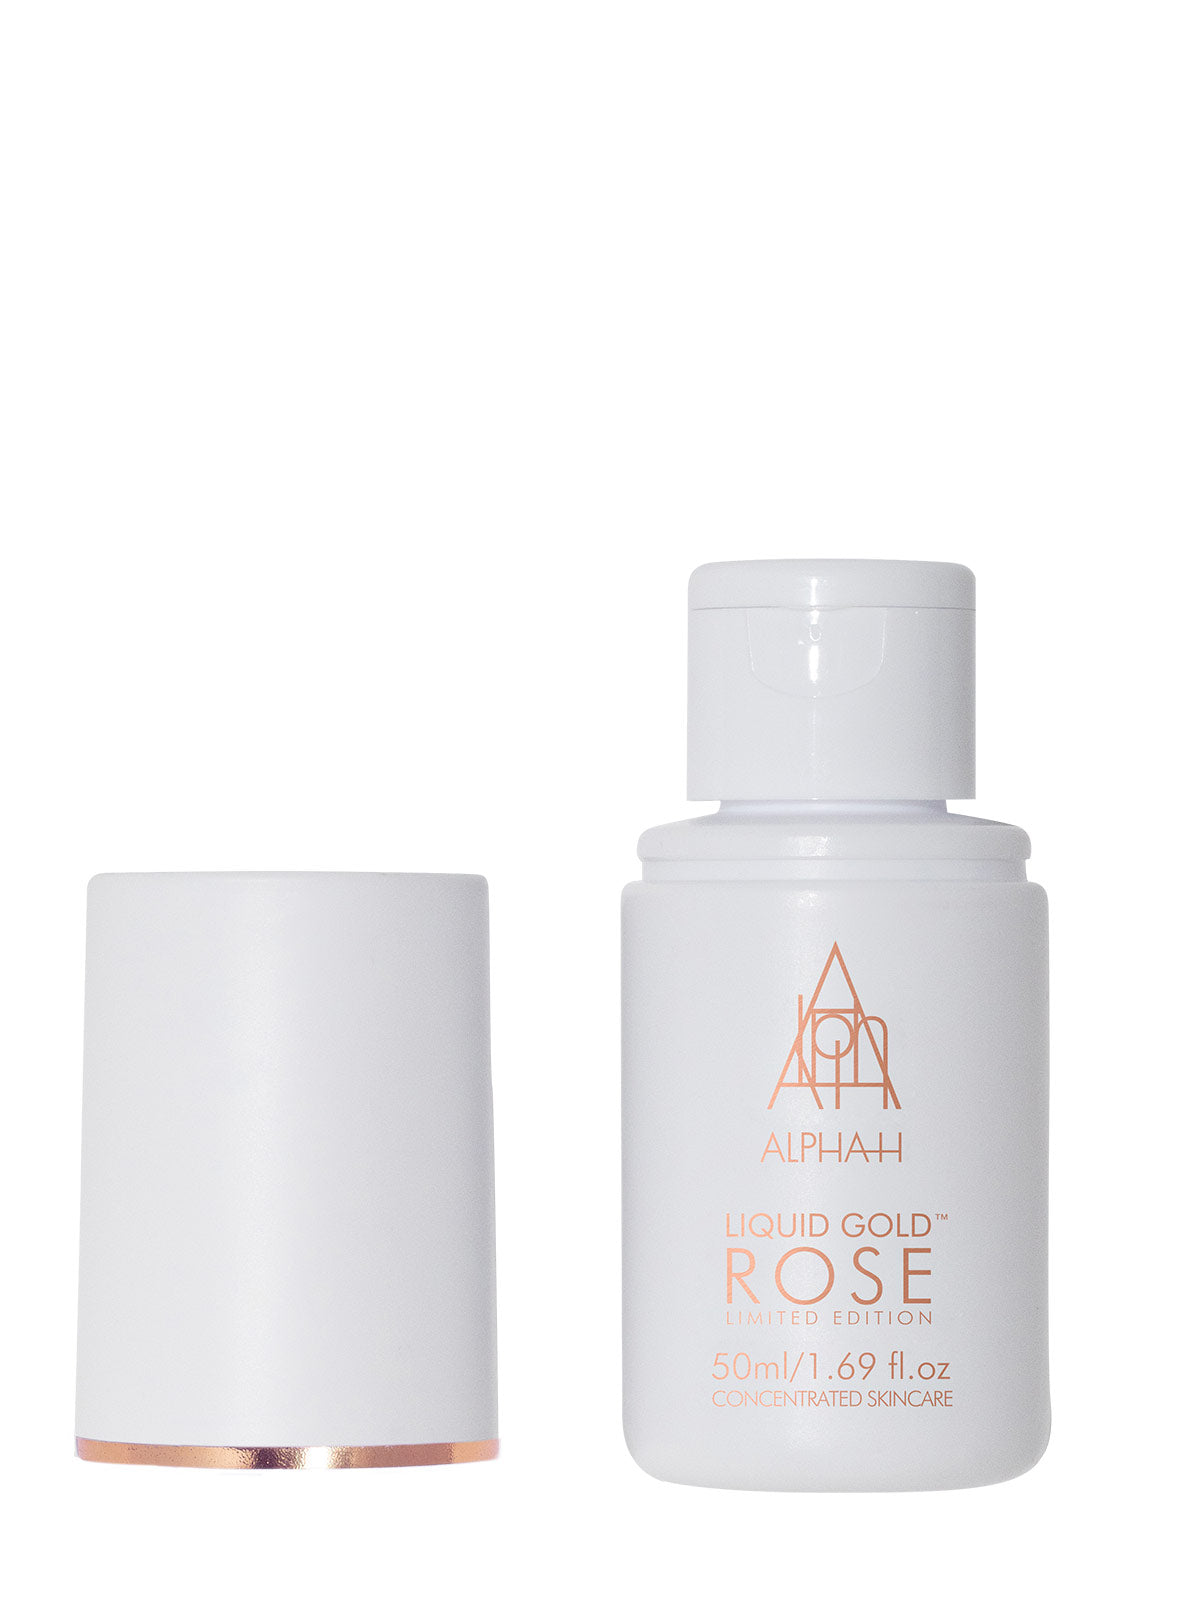 Liquid Gold Rose with Glycolic Acid 50ml